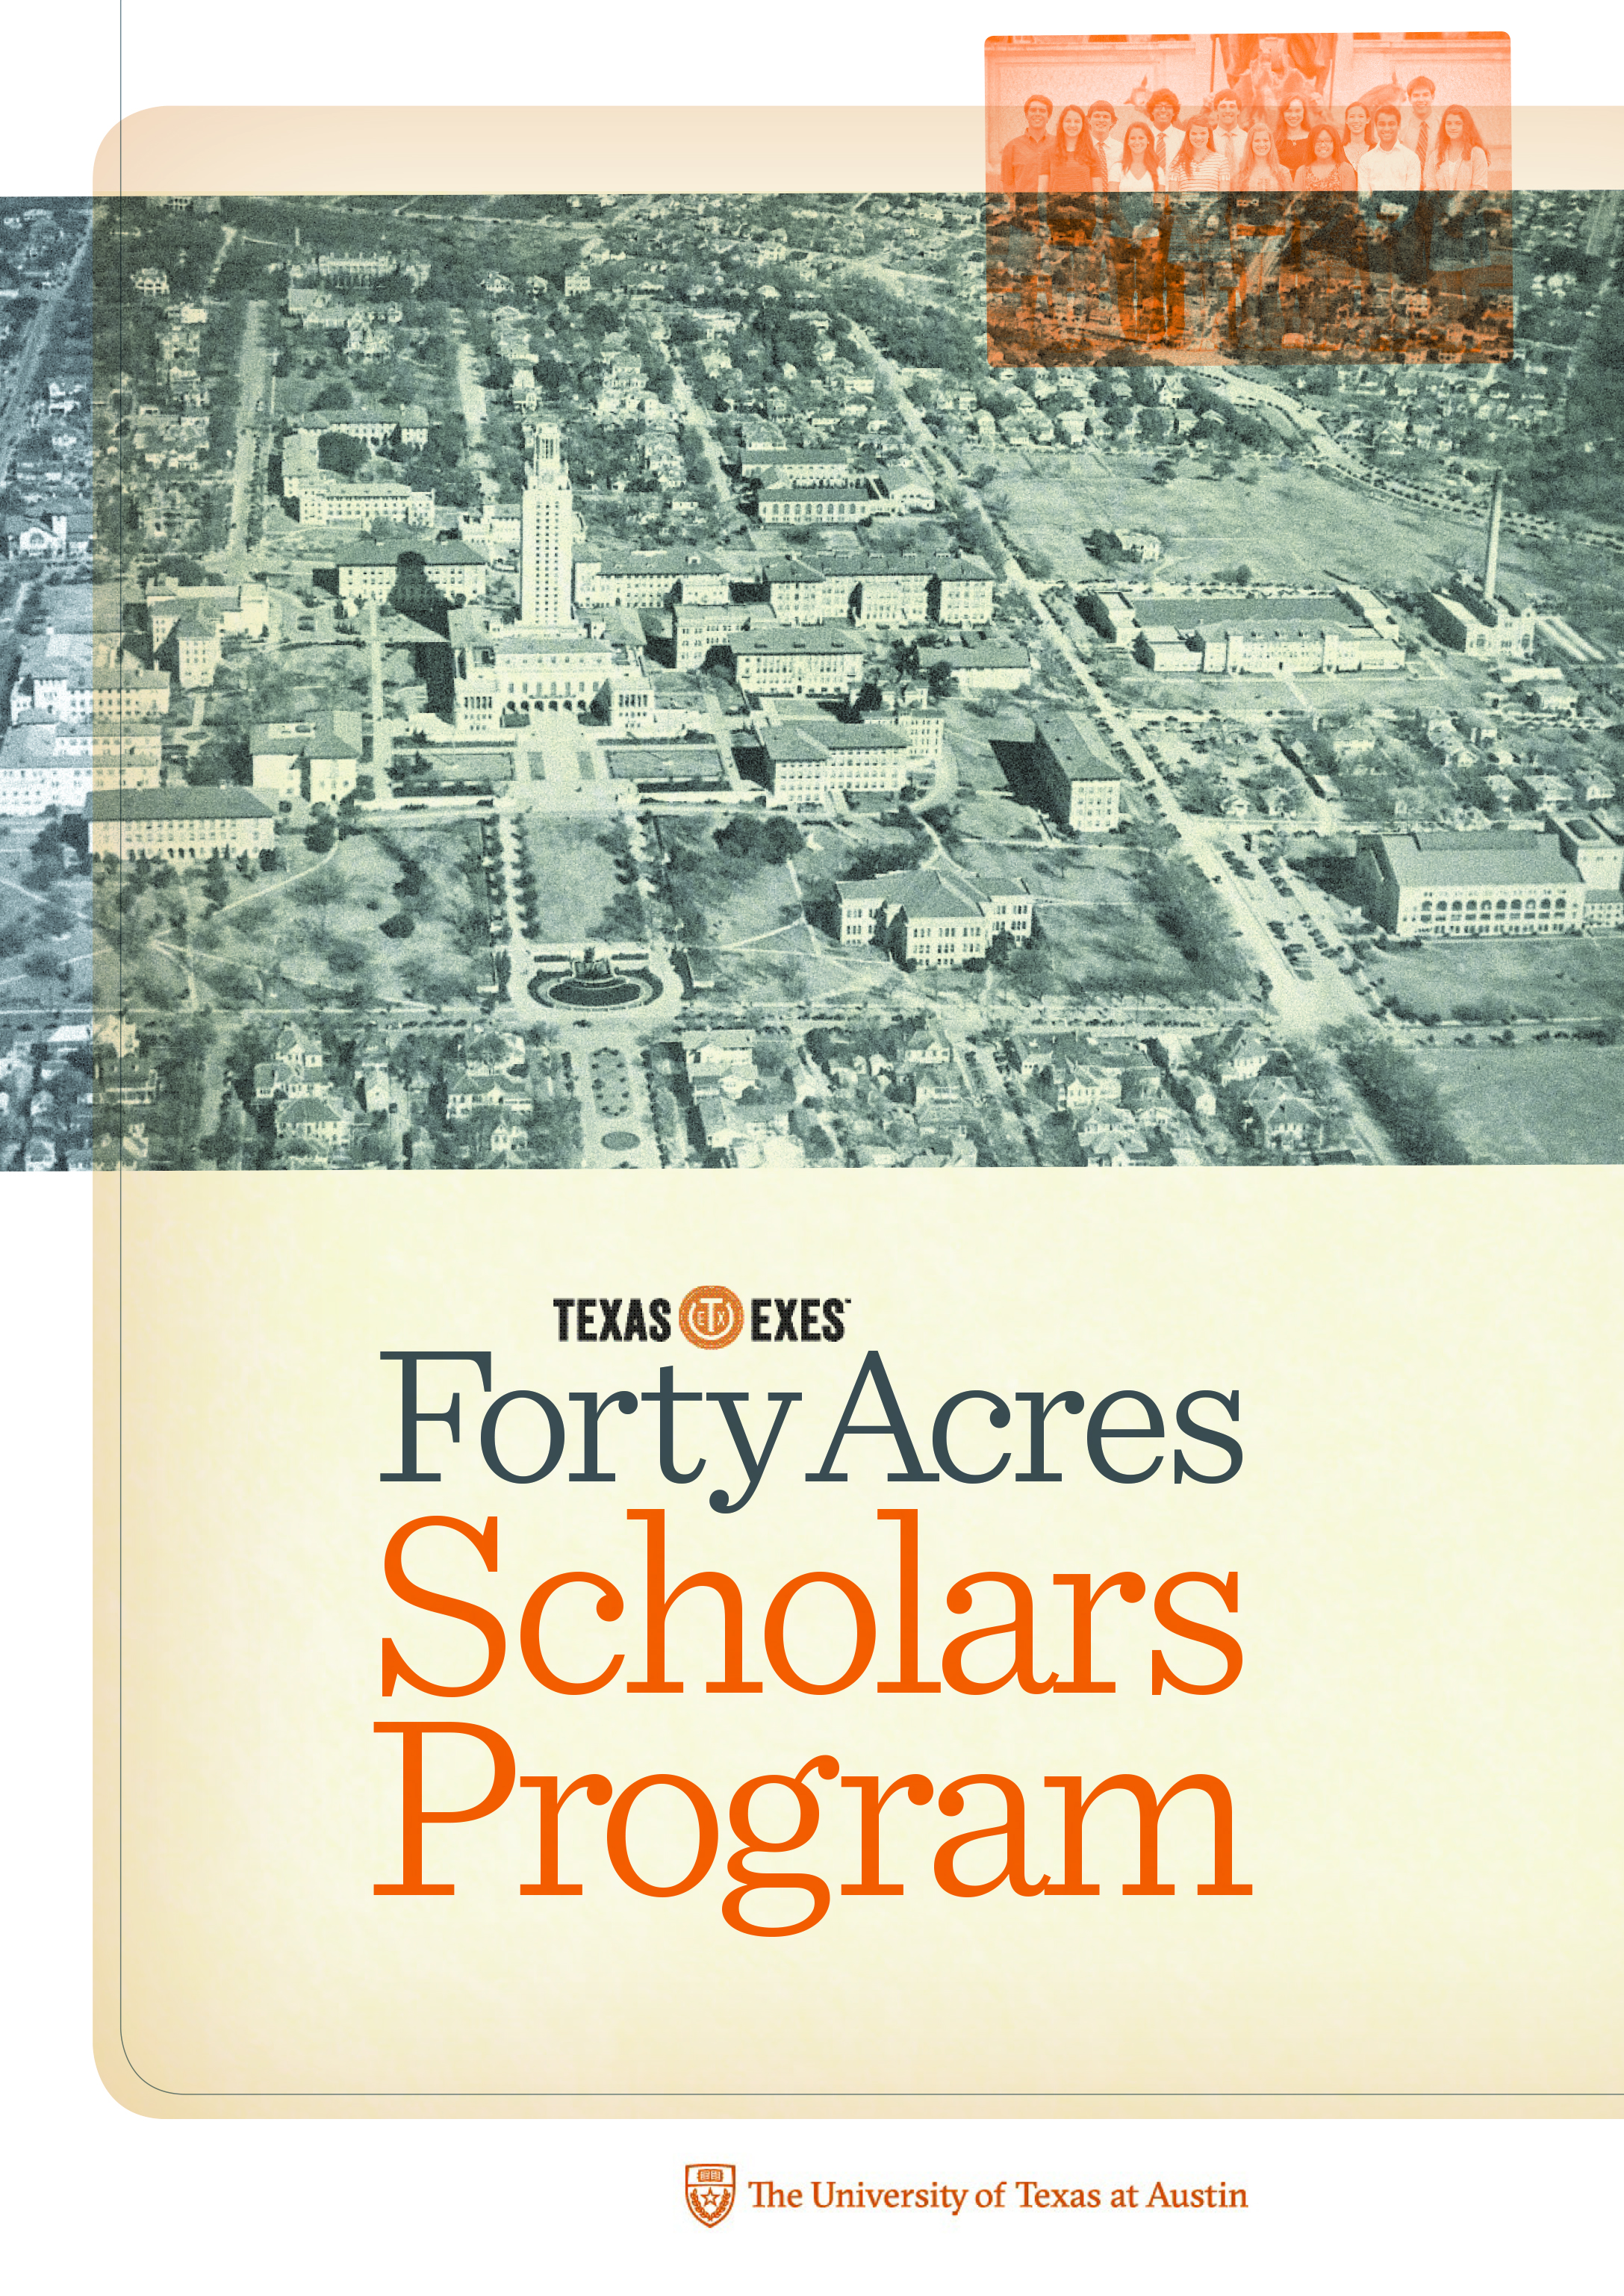 Brochure for scholarship program